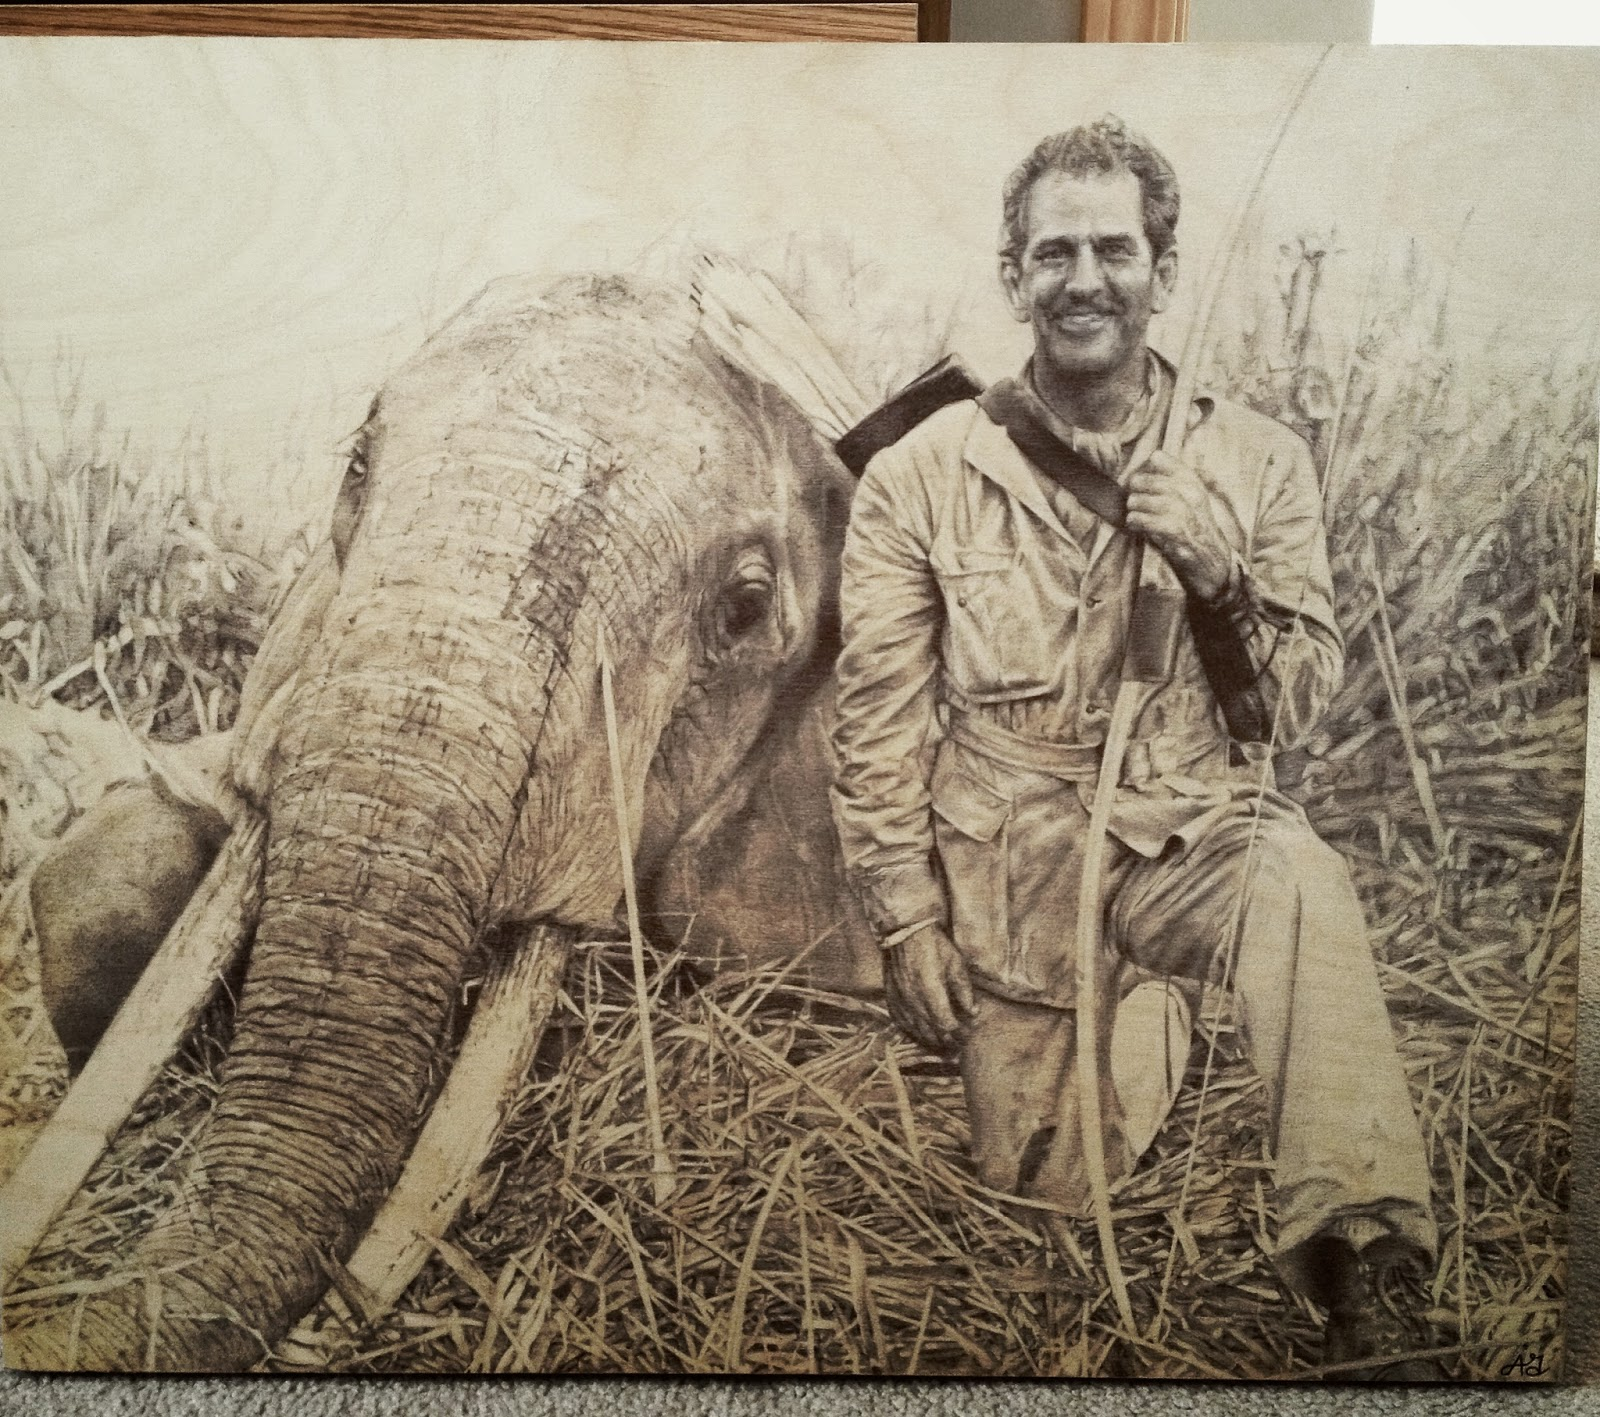 Howard Hill, drawing, bic pen, black pen, wood, art, realism, elephant